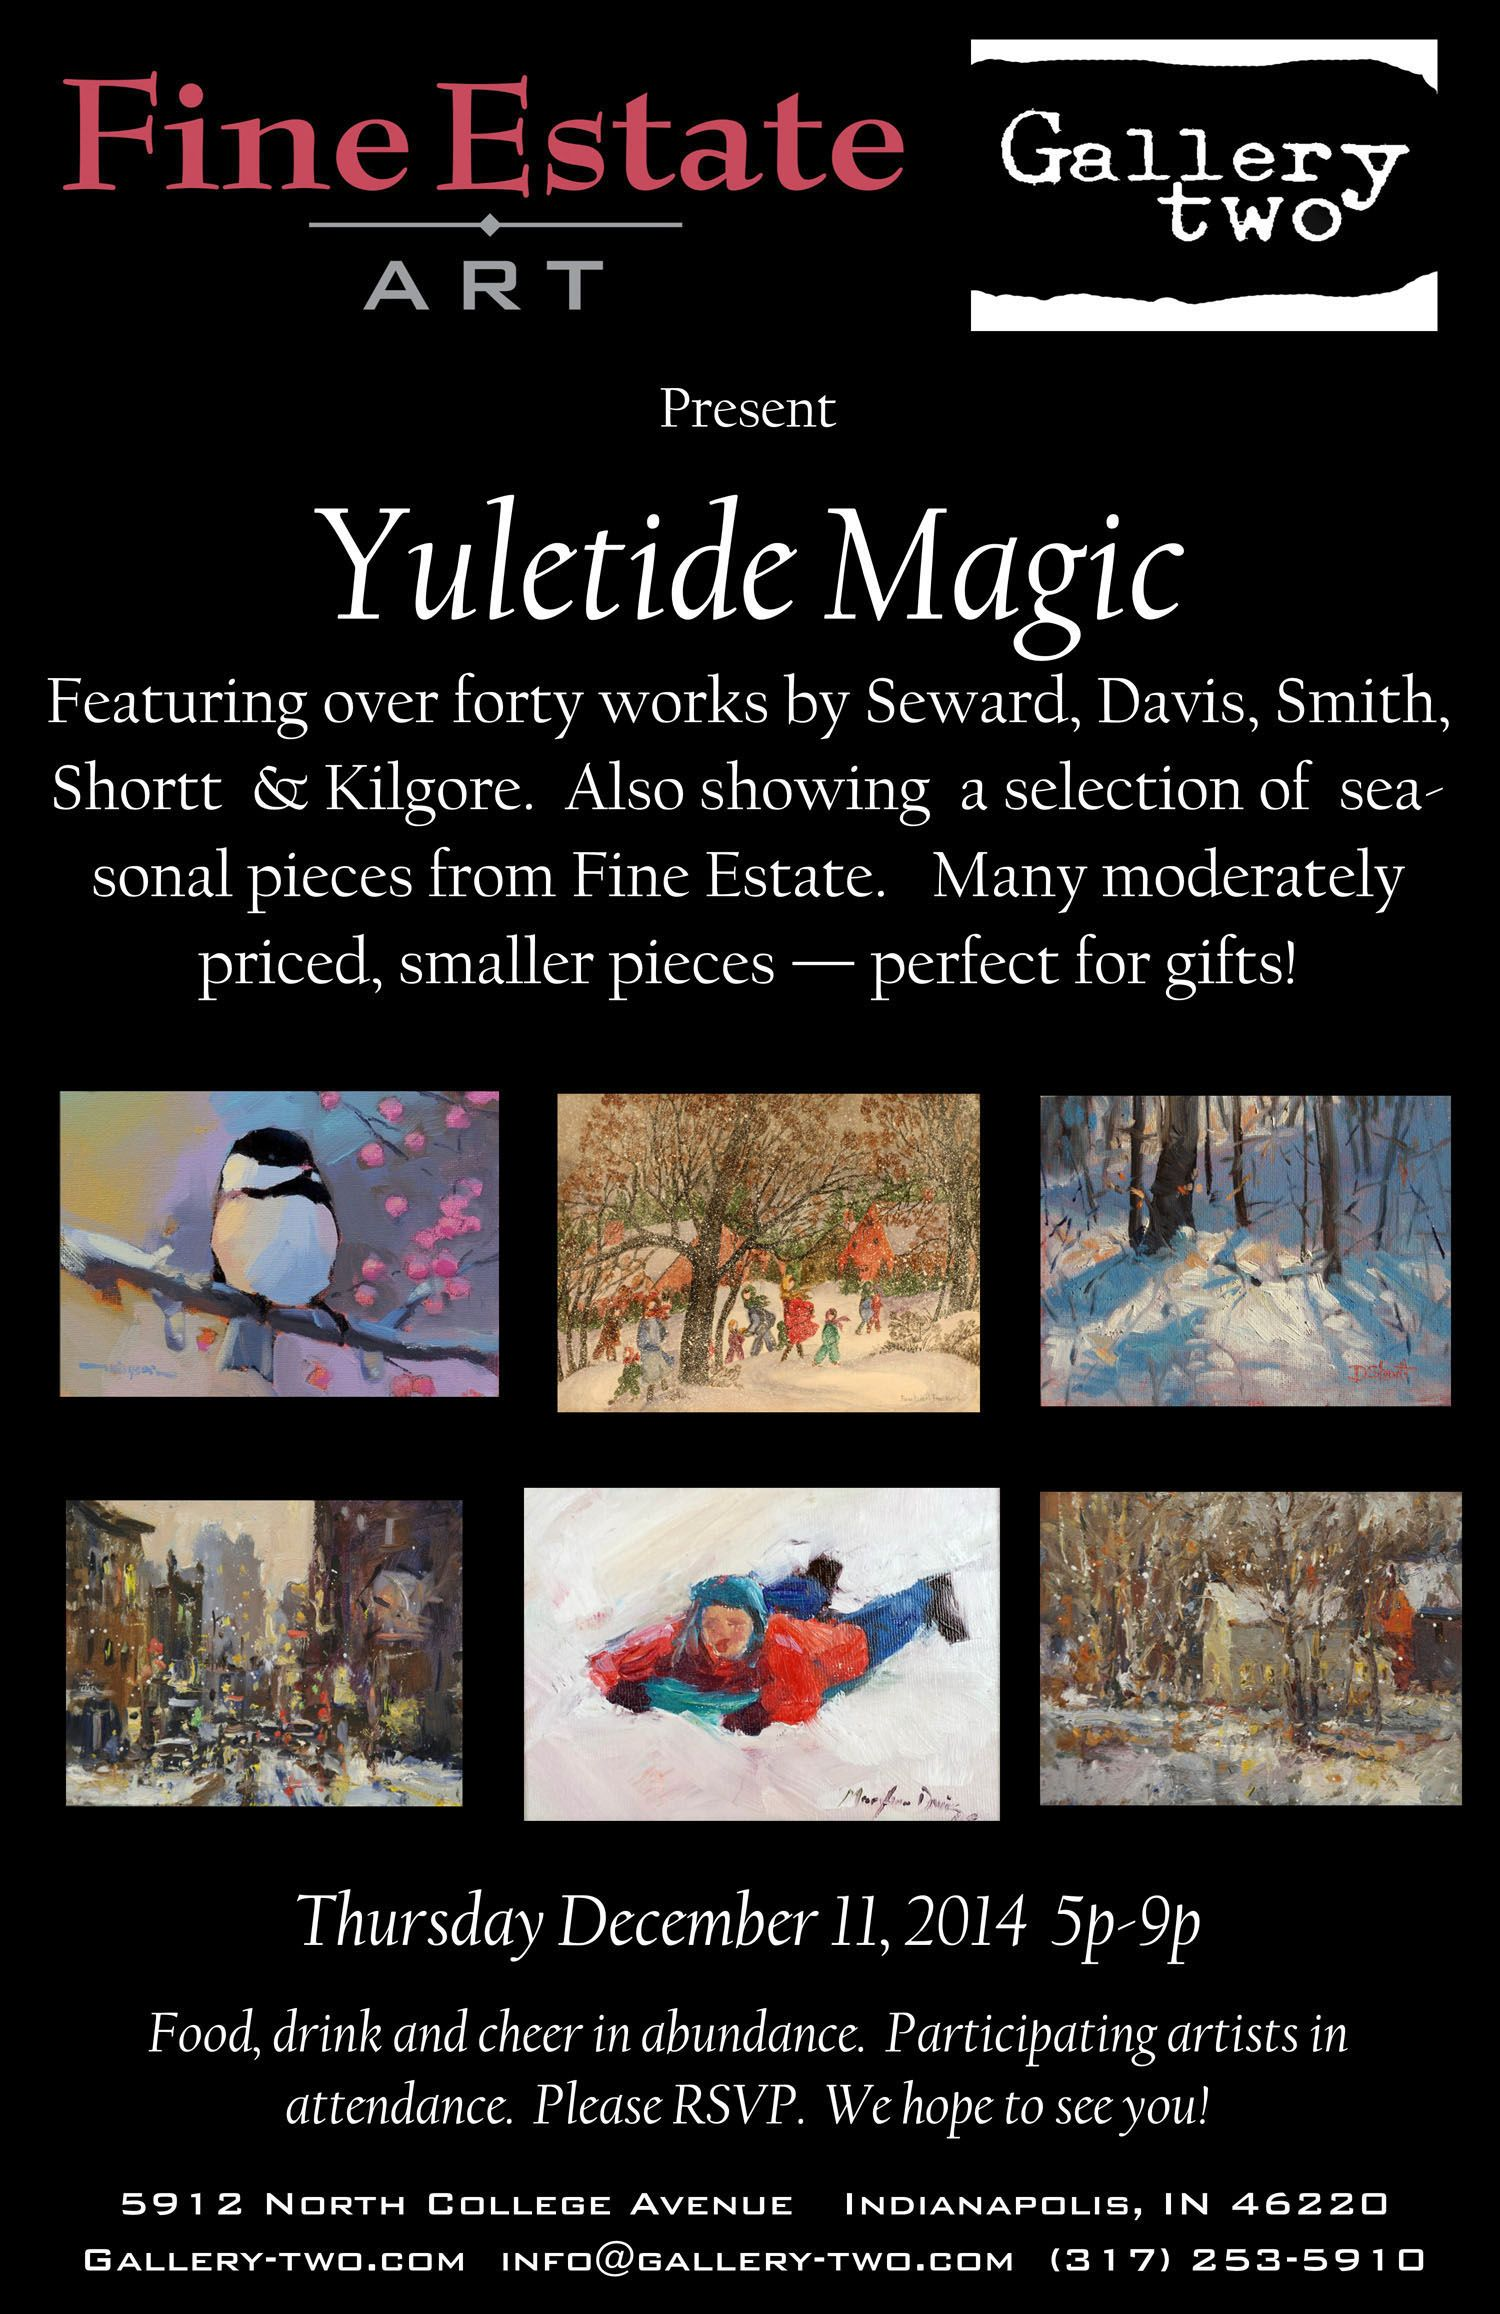 Yuletide Magic Art Open House At Fine Estate Art Rugs Gallery Two 5912 N College Ave Indianapolis Dec 11 5pm Yuletide Holiday Words Christmas Seasons